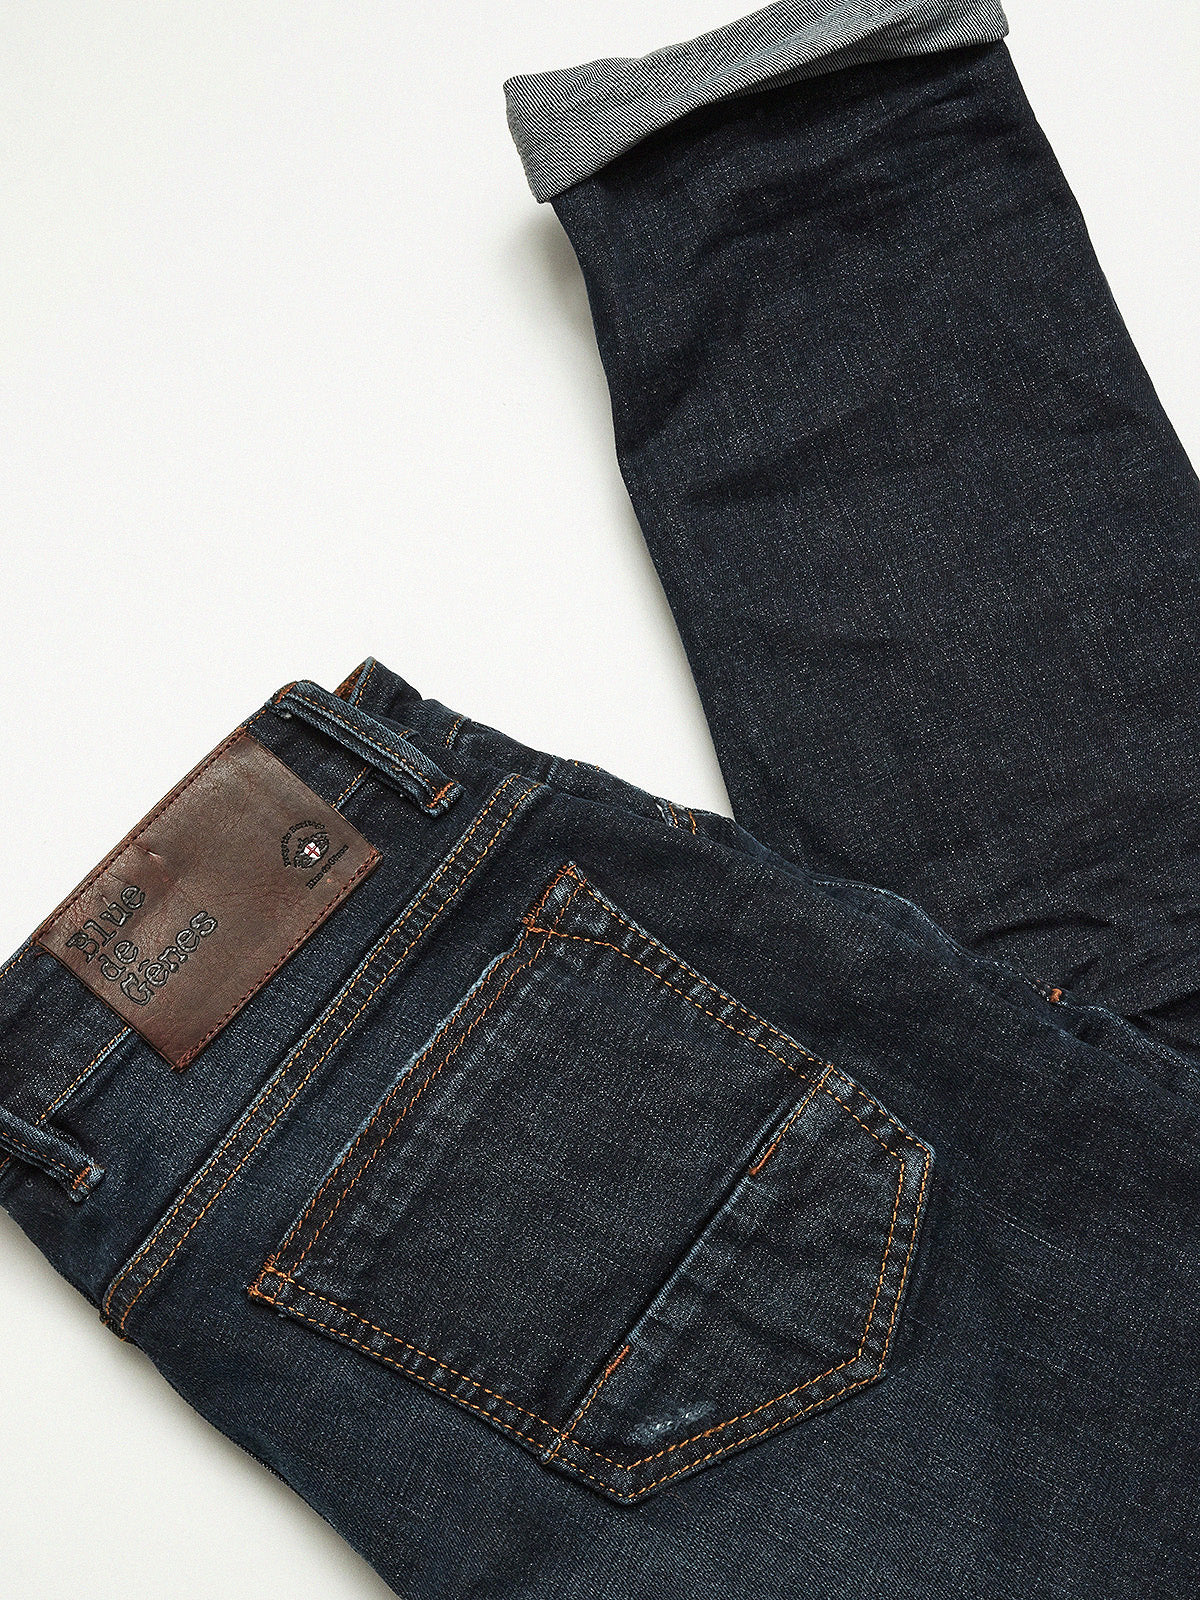 Vinci N15 Blue Night Jeans